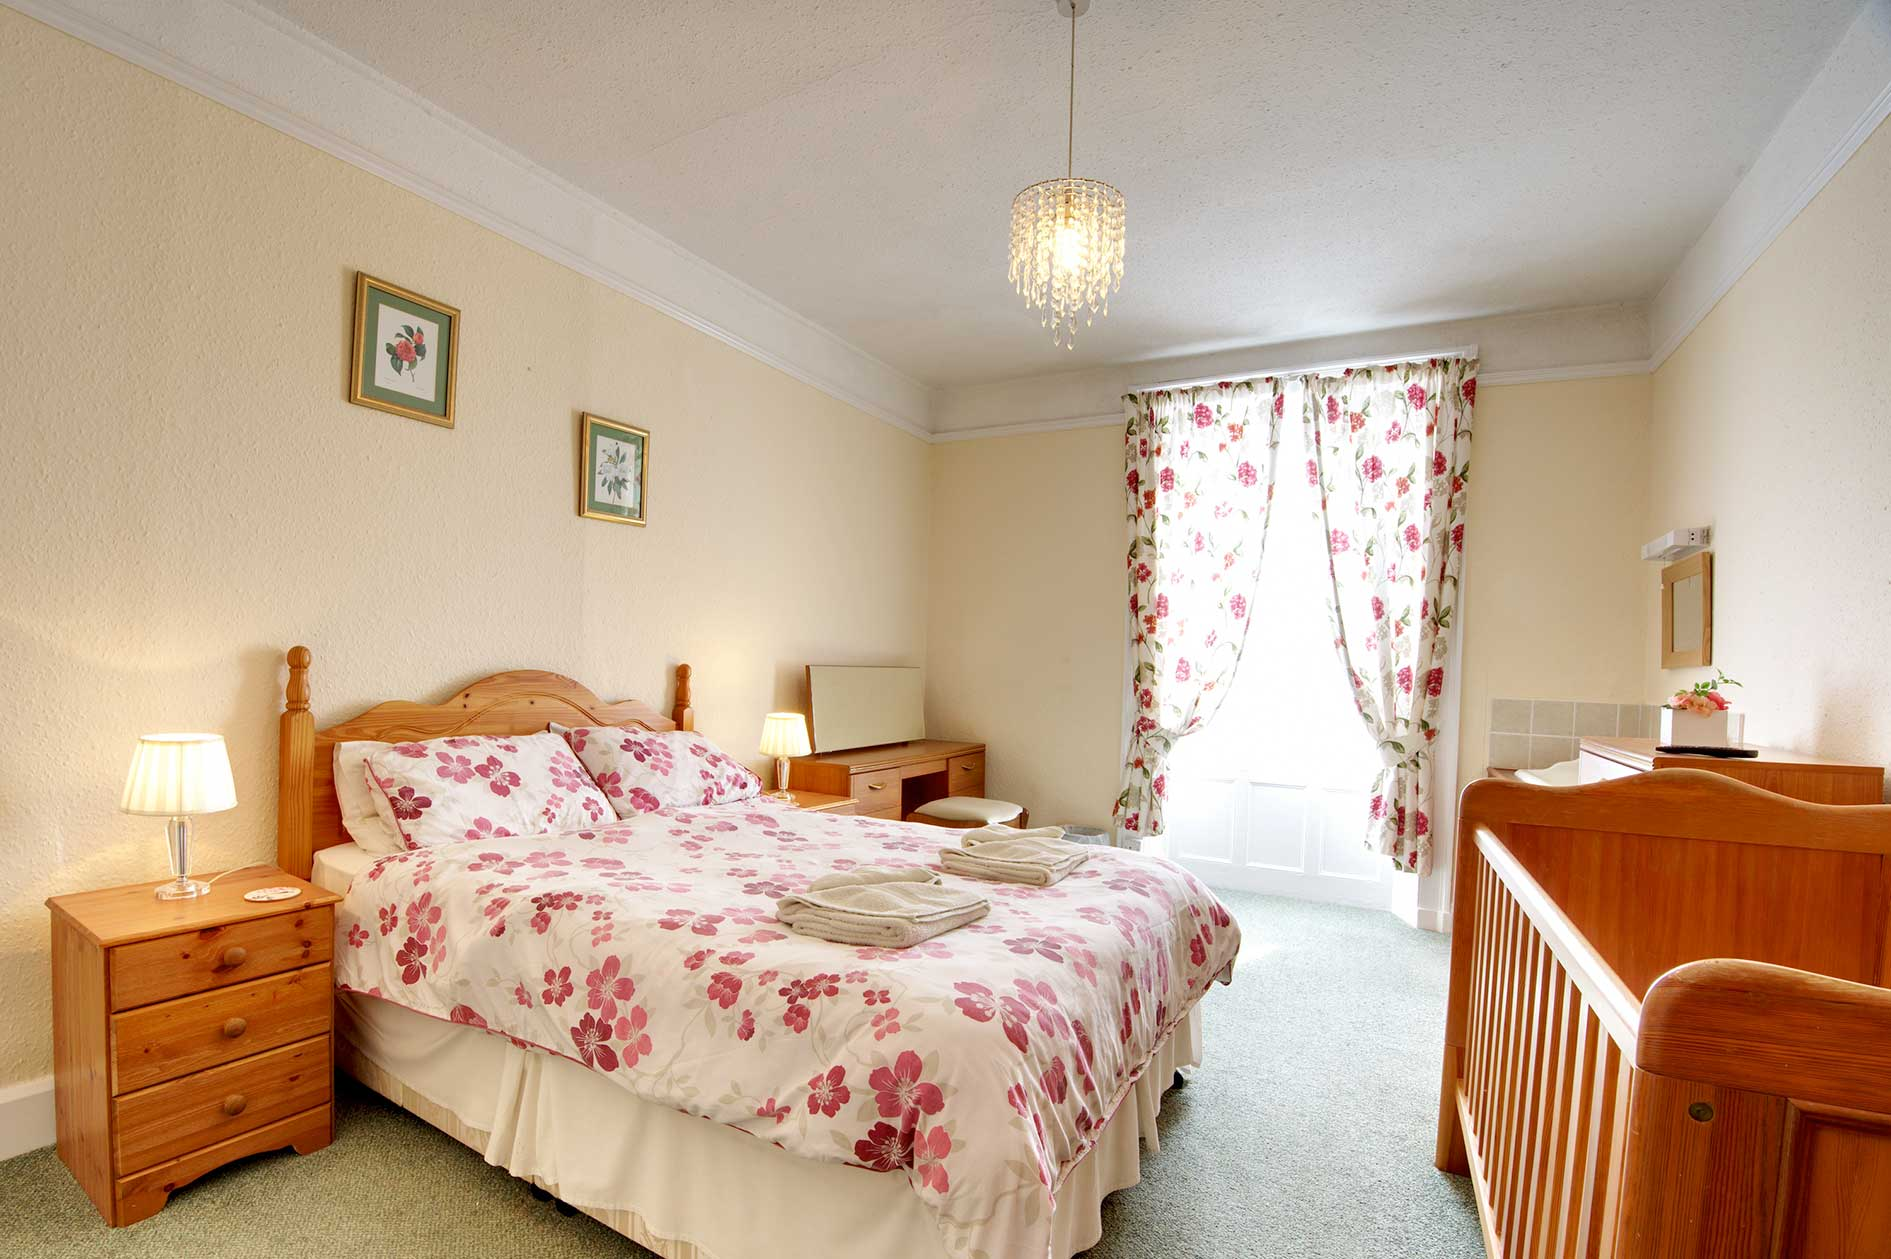 Light Bedroom With Double Bed With Red Flower Covers And Wooden Furniture Including A Cot